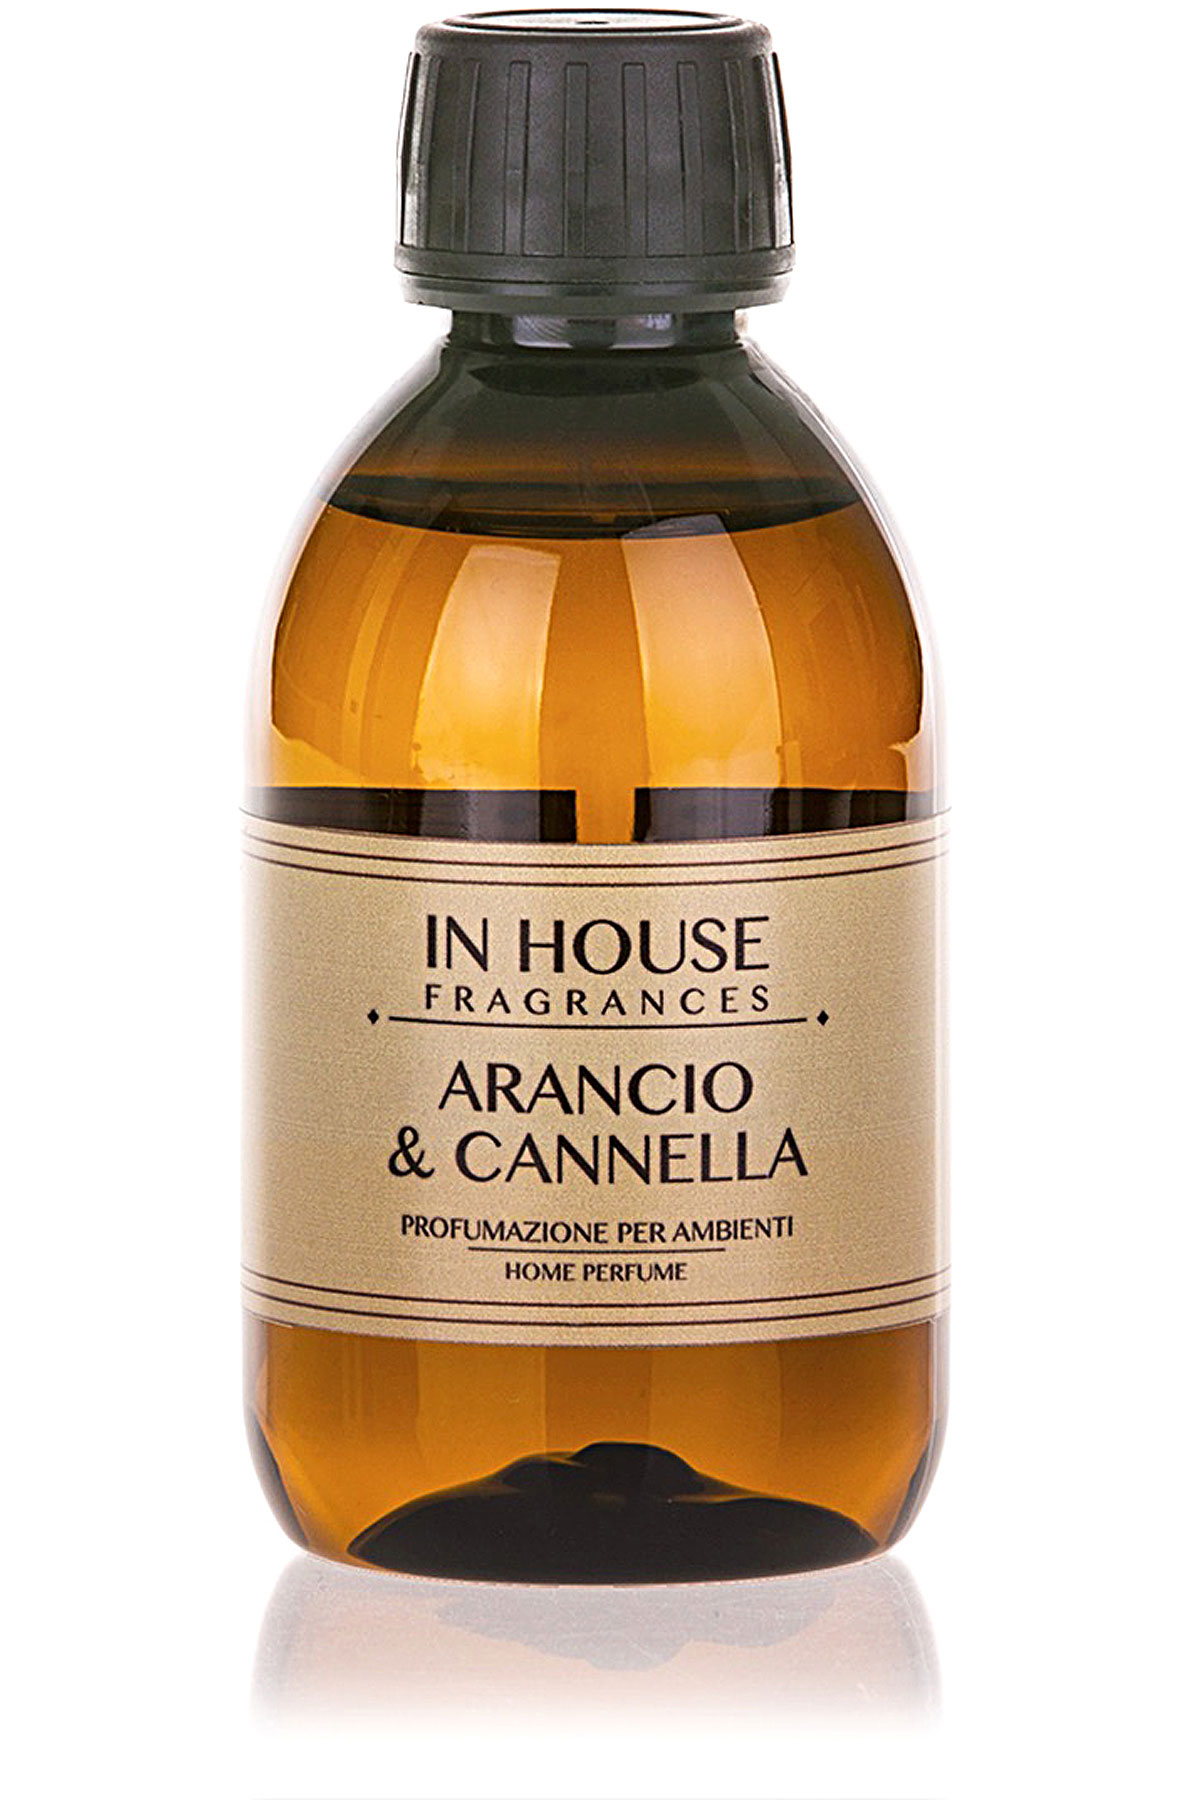 In House Fragrances Home Scents for Men, Ambra & Spezie - Refill - 200 Ml, 2019, 200 ml